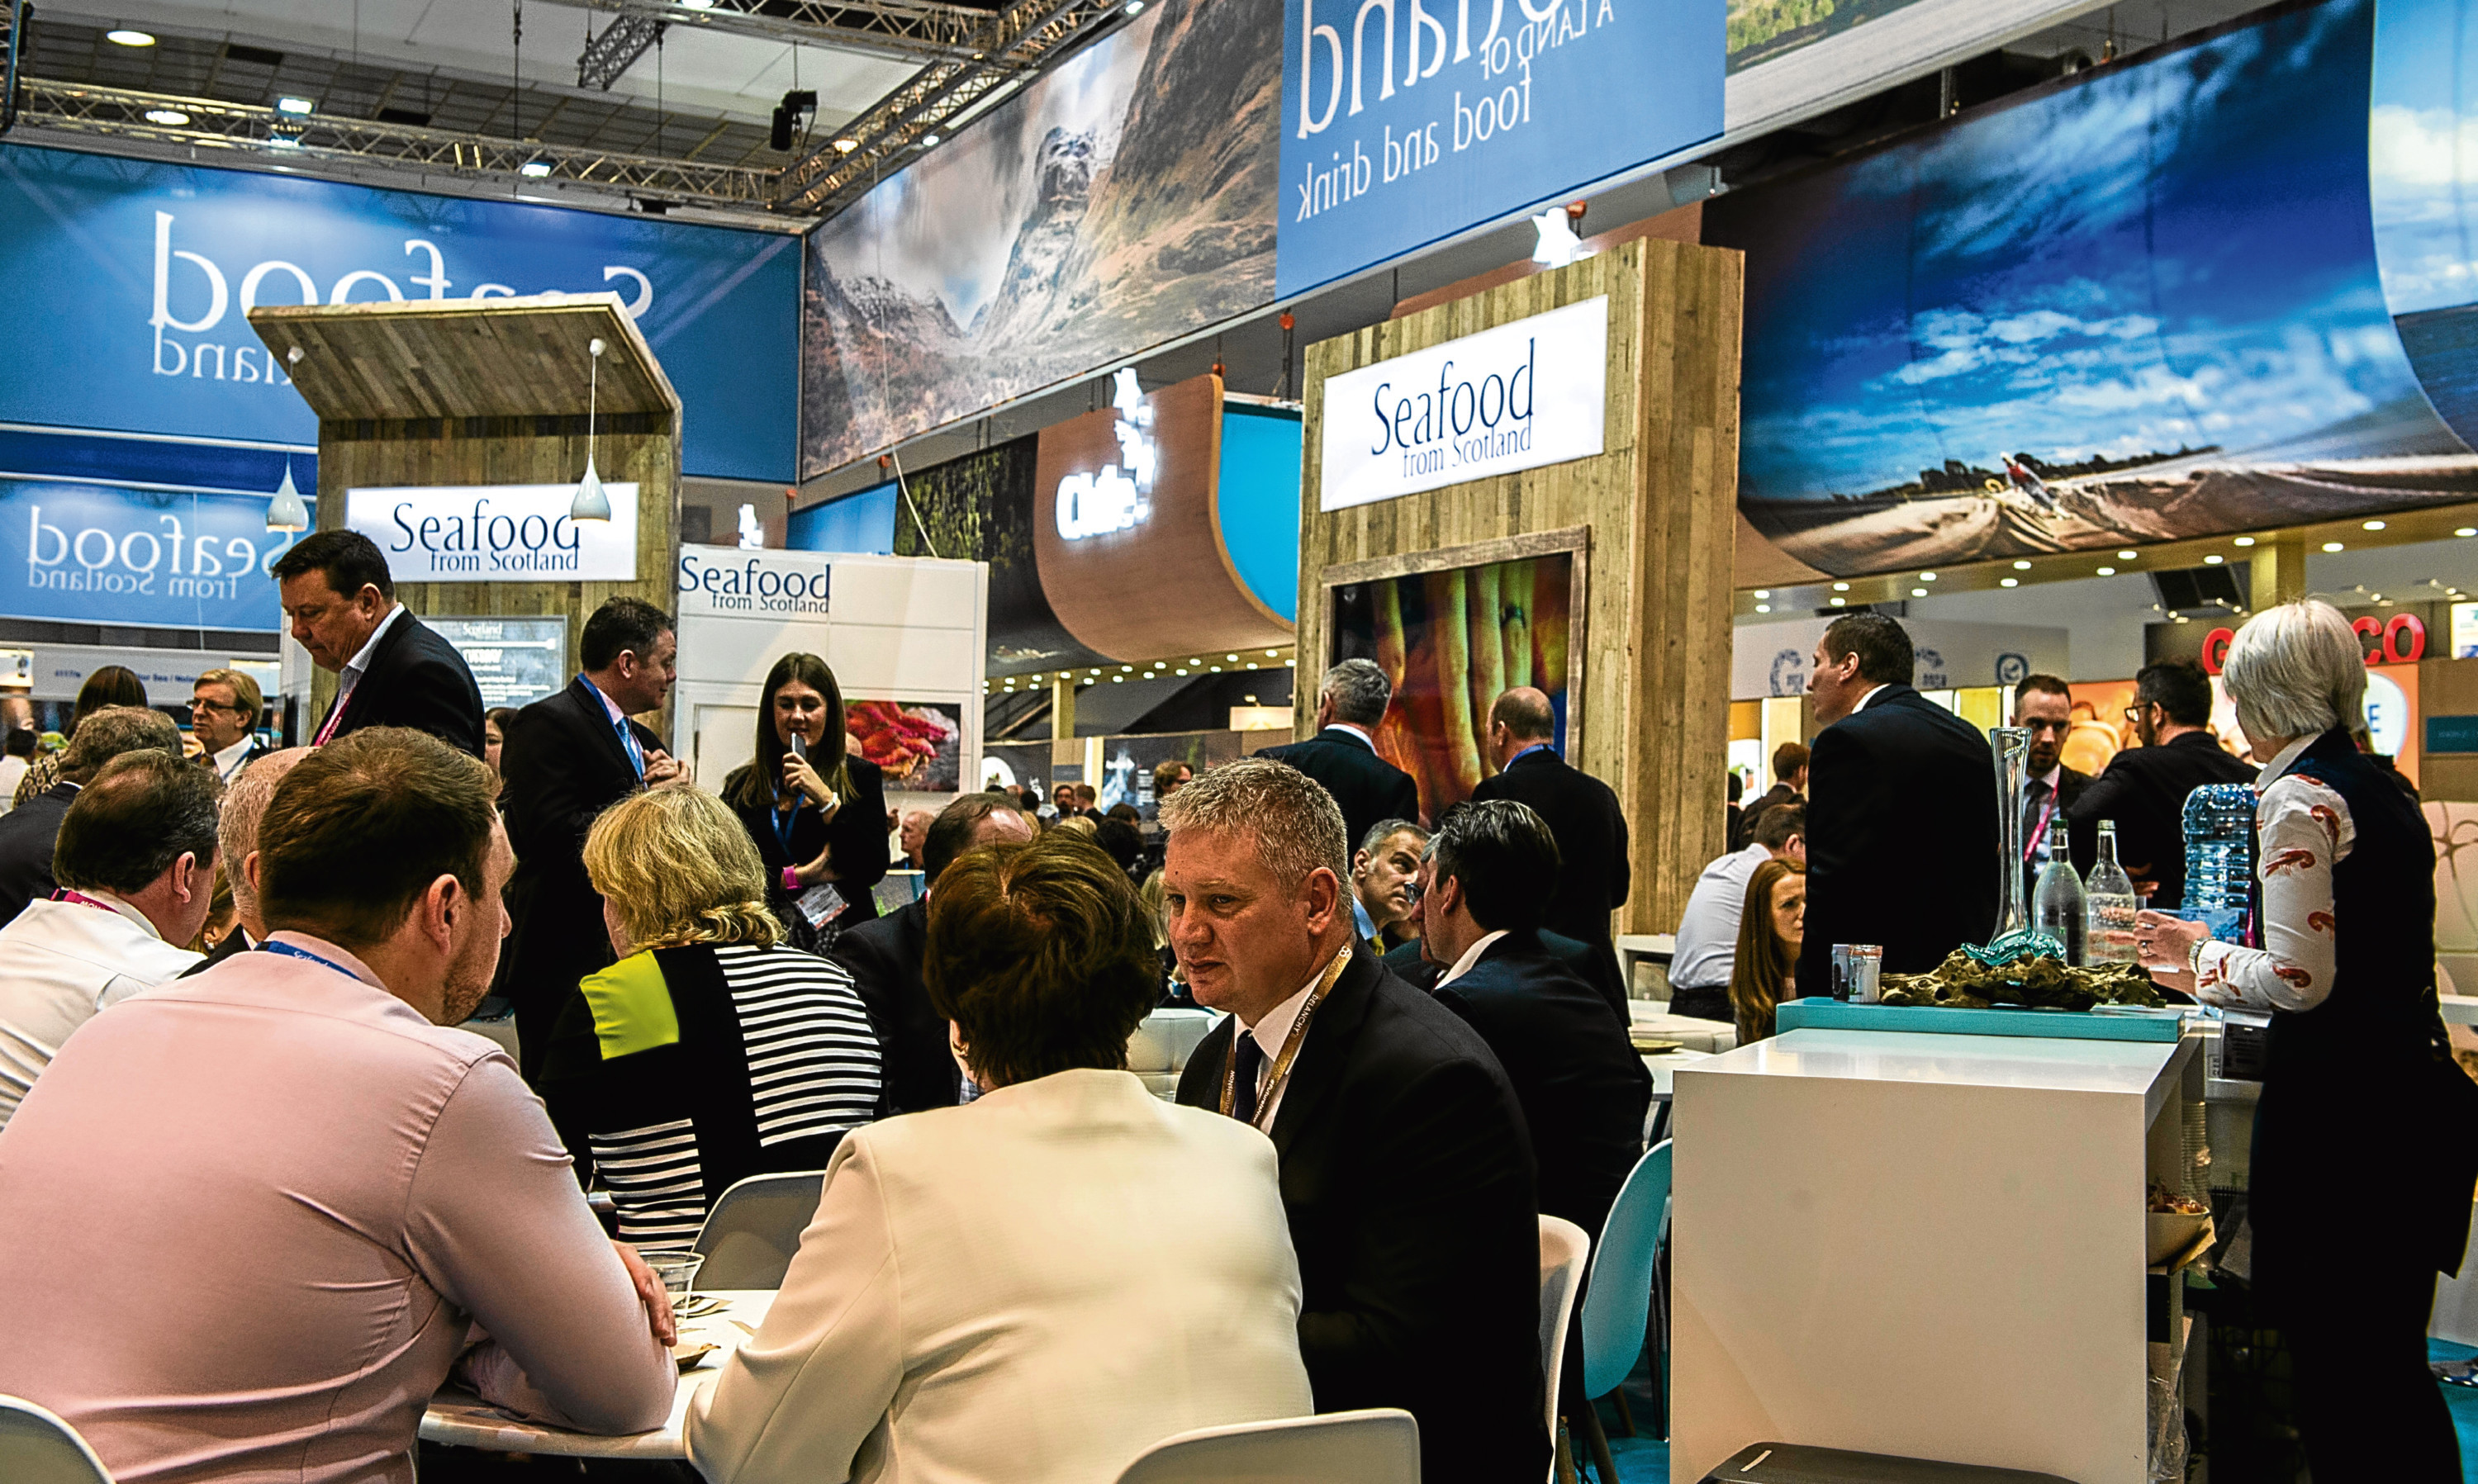 The Scottish stand at the Seafood Expo Global in Brussels.